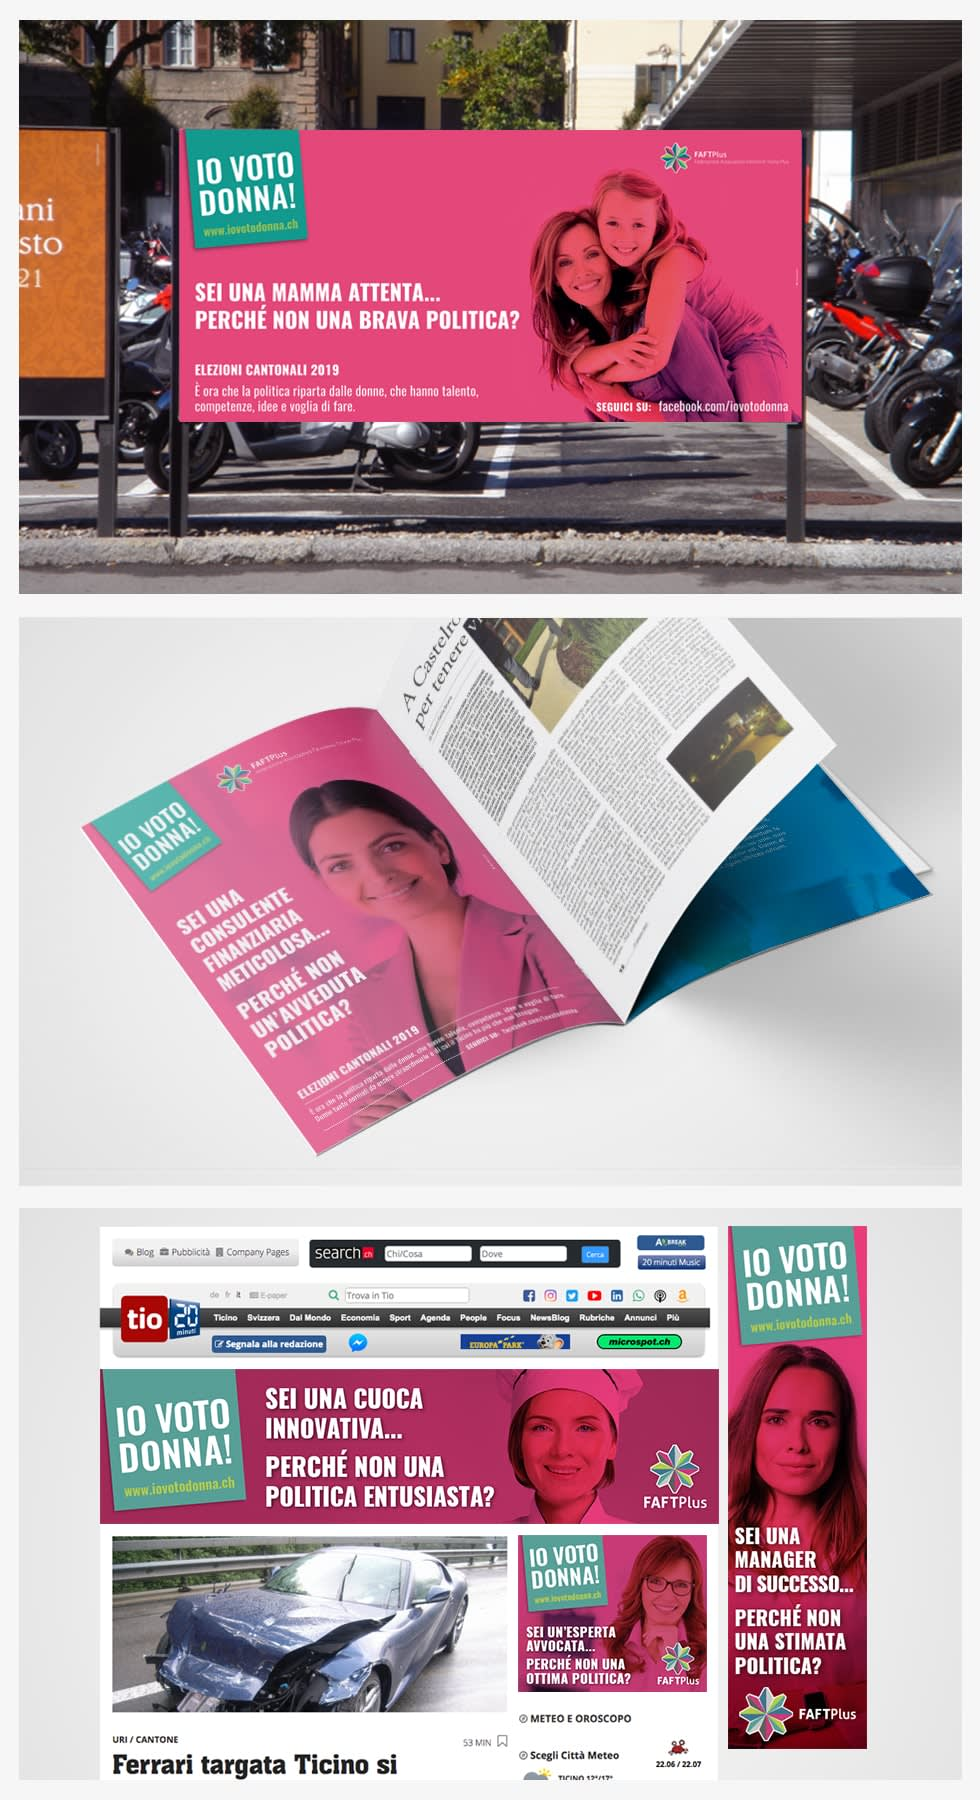 """Image of a billboard, magazine, and webpage with text """"Io Voto Donna!"""""""